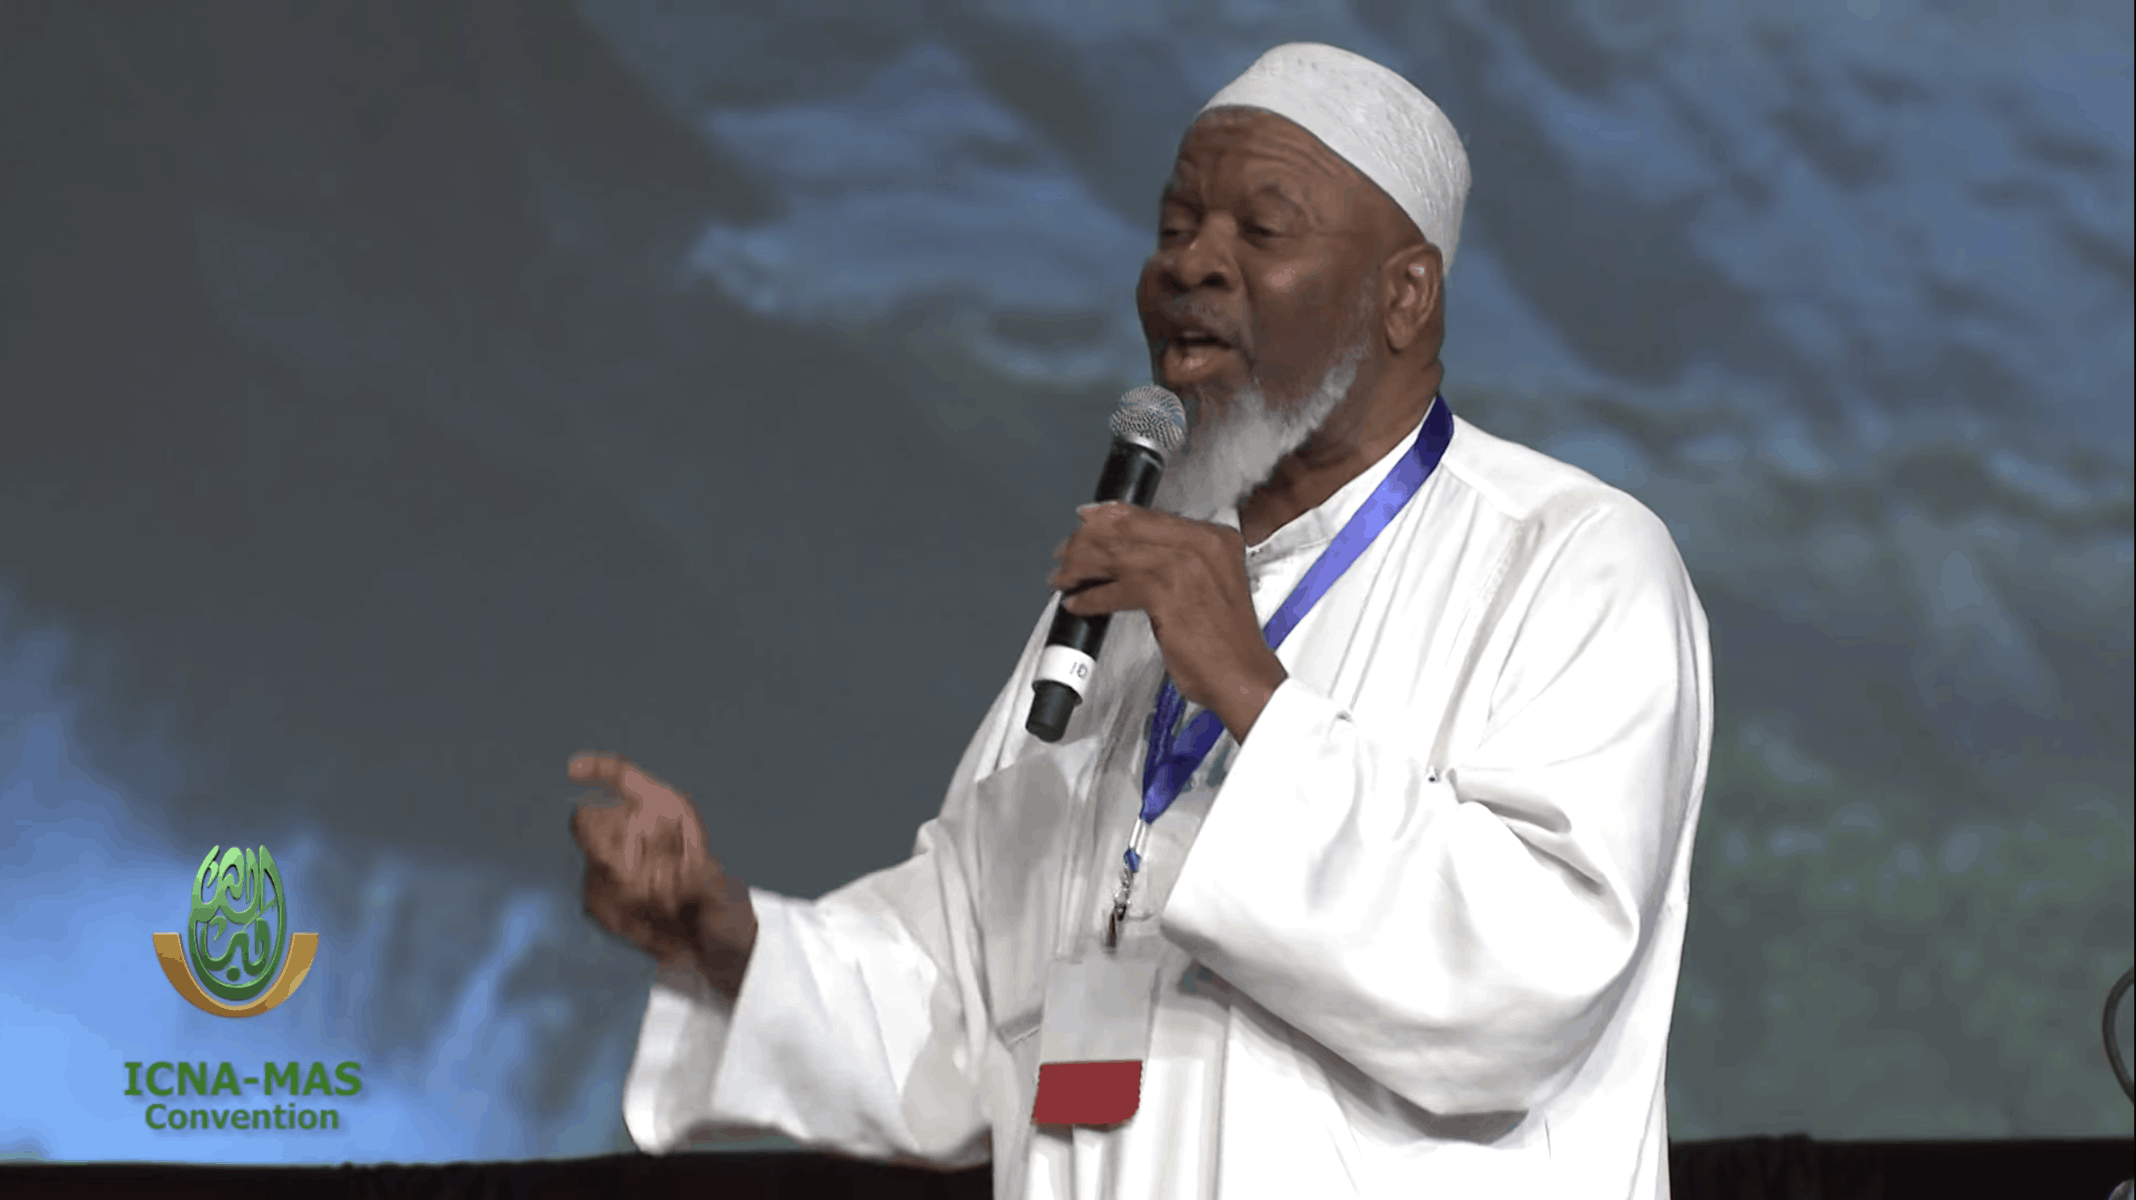 Siraj Wahhaj – Changing Narrative About Islam